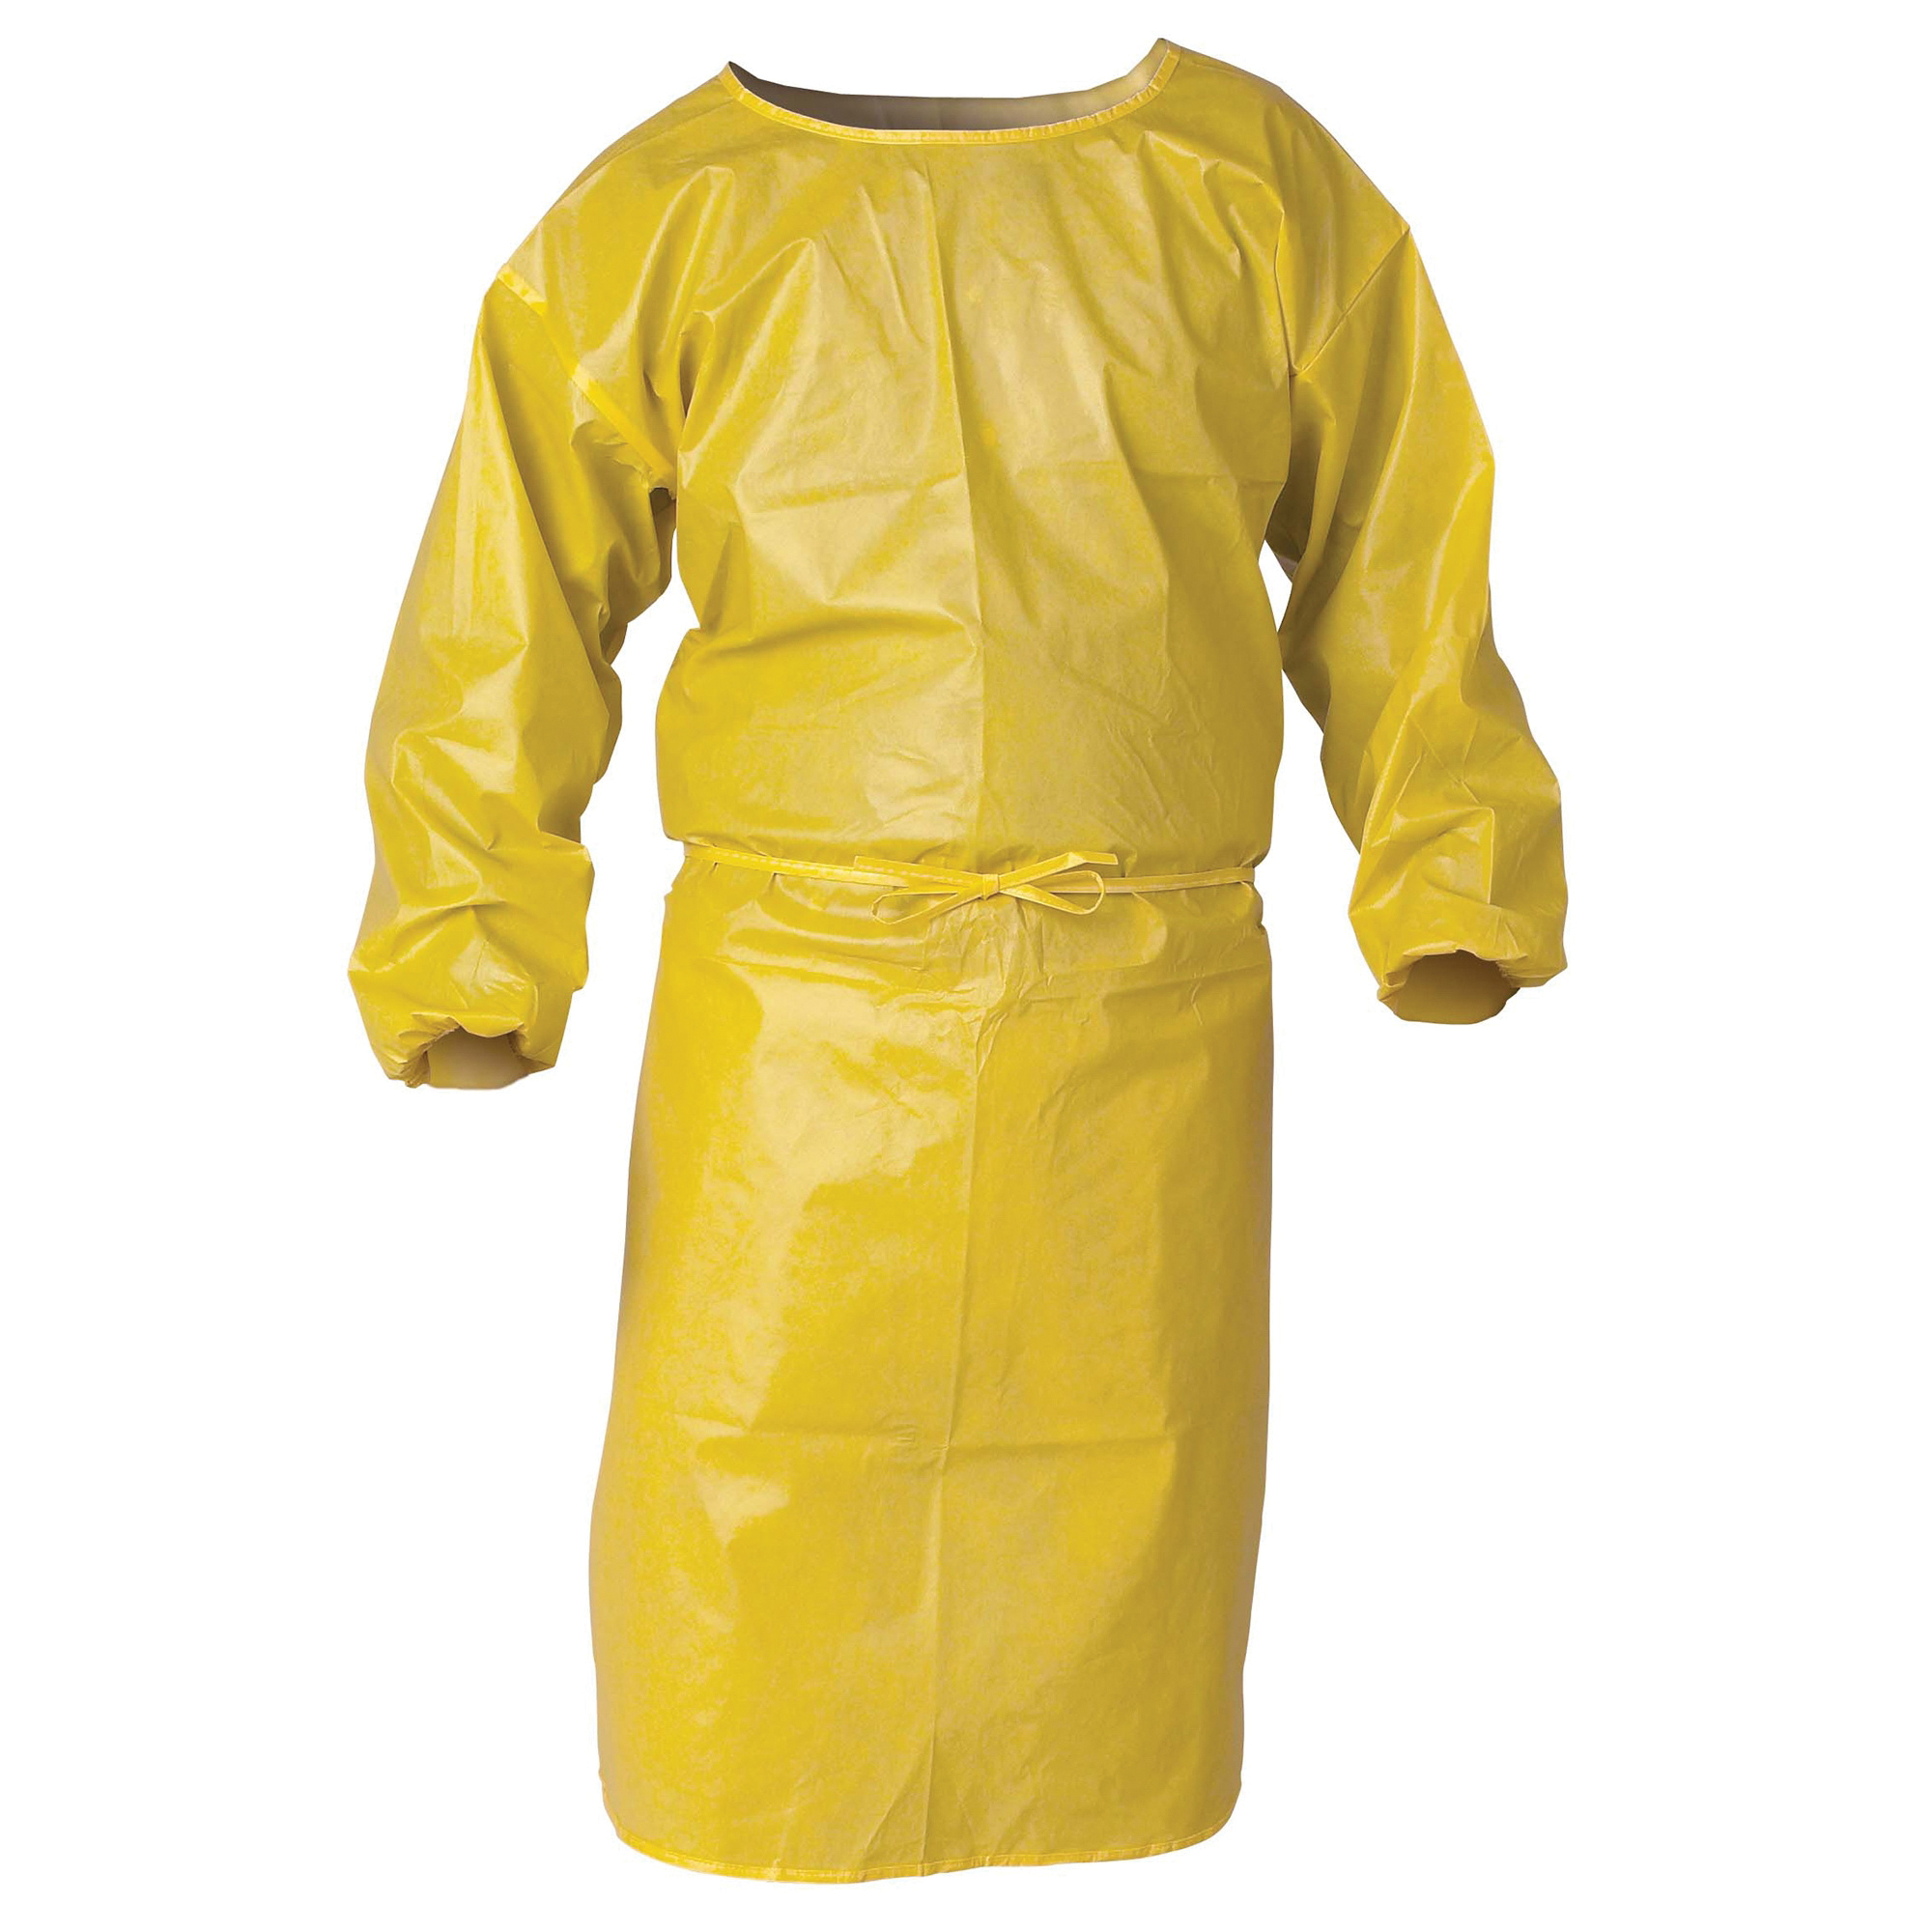 KleenGuard™ 09830 A70 Spray Protection Smock, 2XL, Yellow, 1.5 mil Polyethylene Coated Fabric, 52 in L, Front Tie Closure, Specifications Met: TAA Complaint, NFPA 99